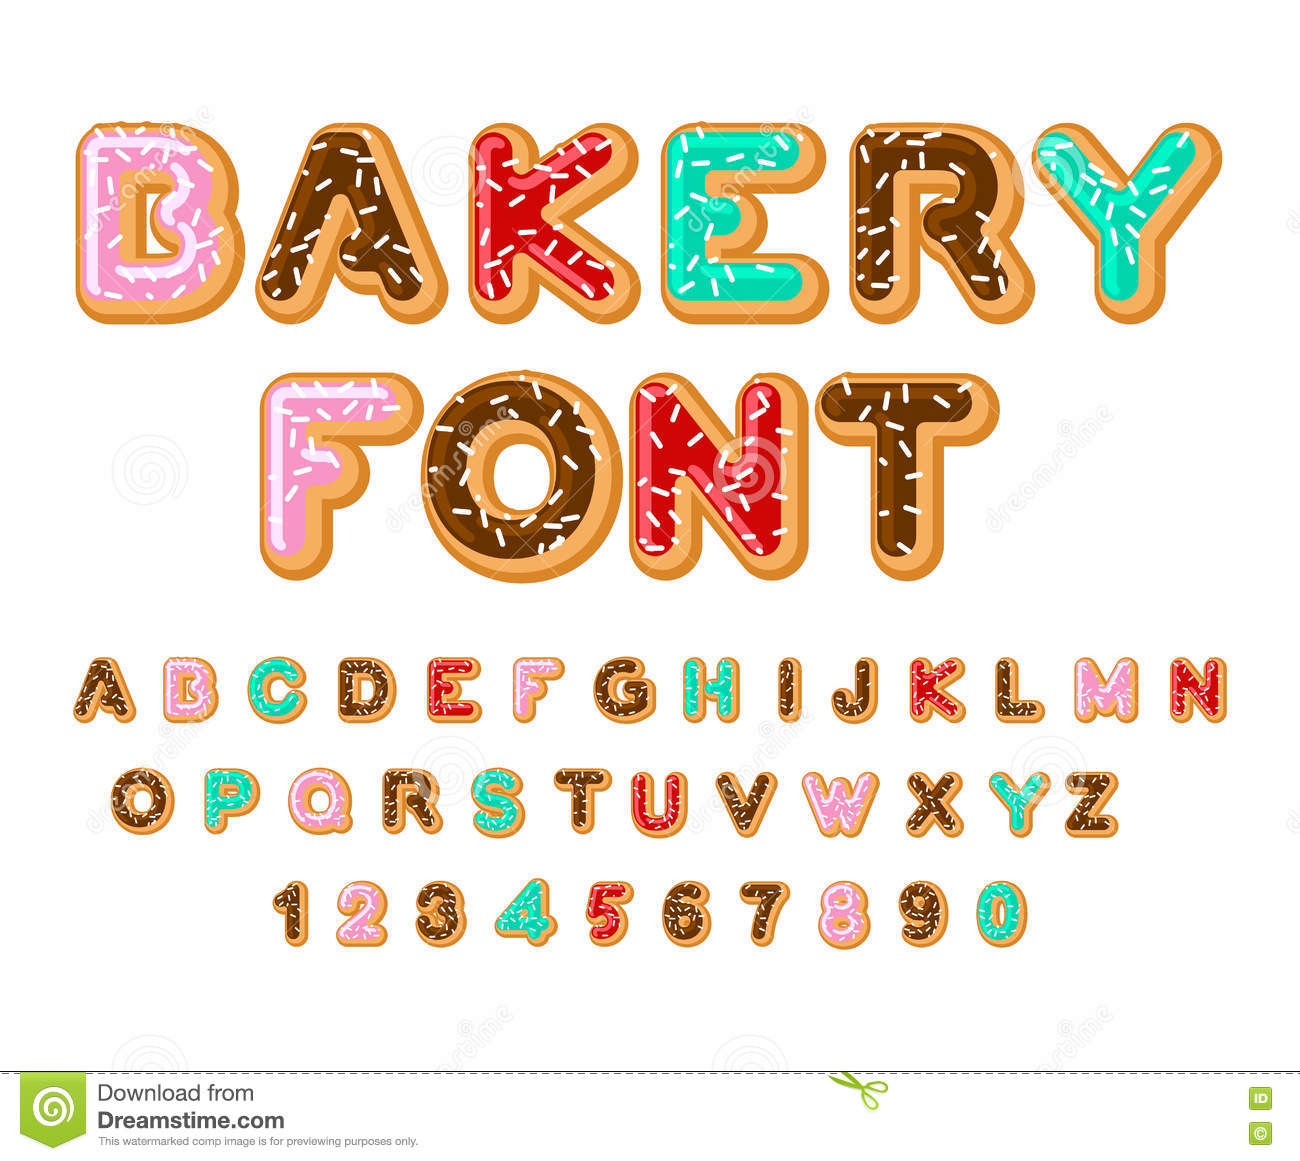 Bakery Font Donut Abc Baked In Oil Letters Chocolate